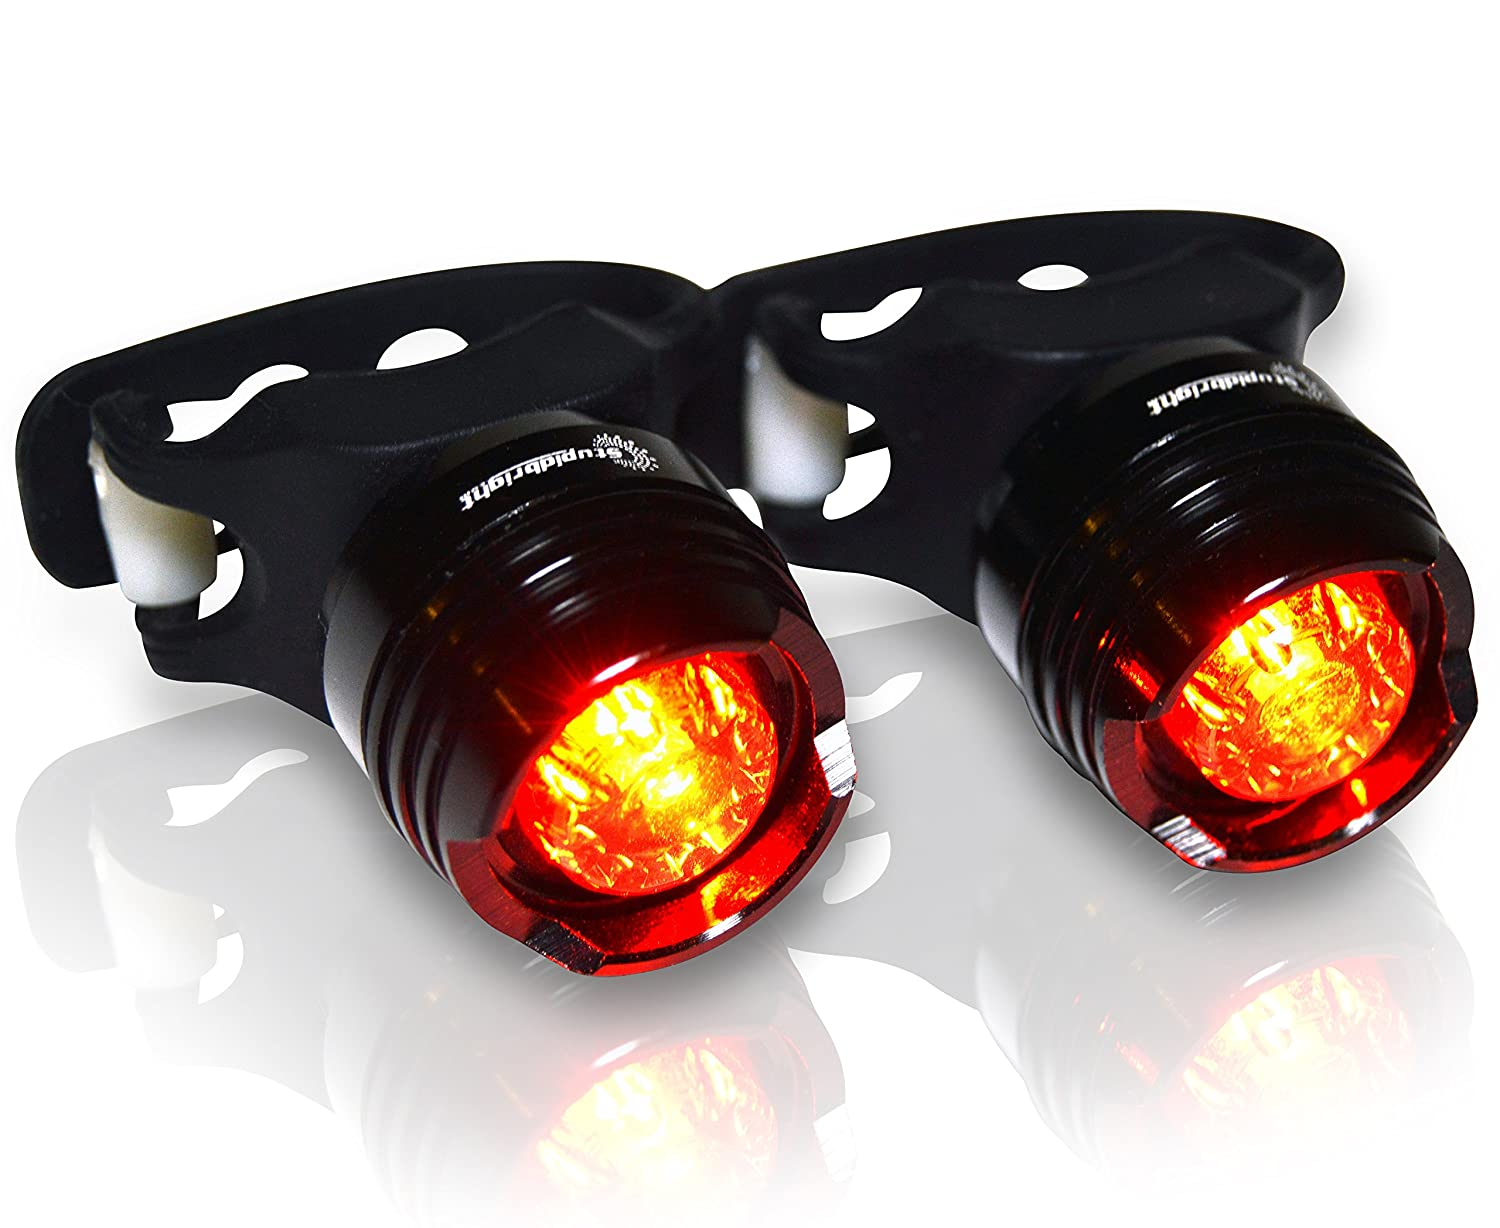 Stupidbright Sbr 1 Strap On Led Rear Bike Tail Light